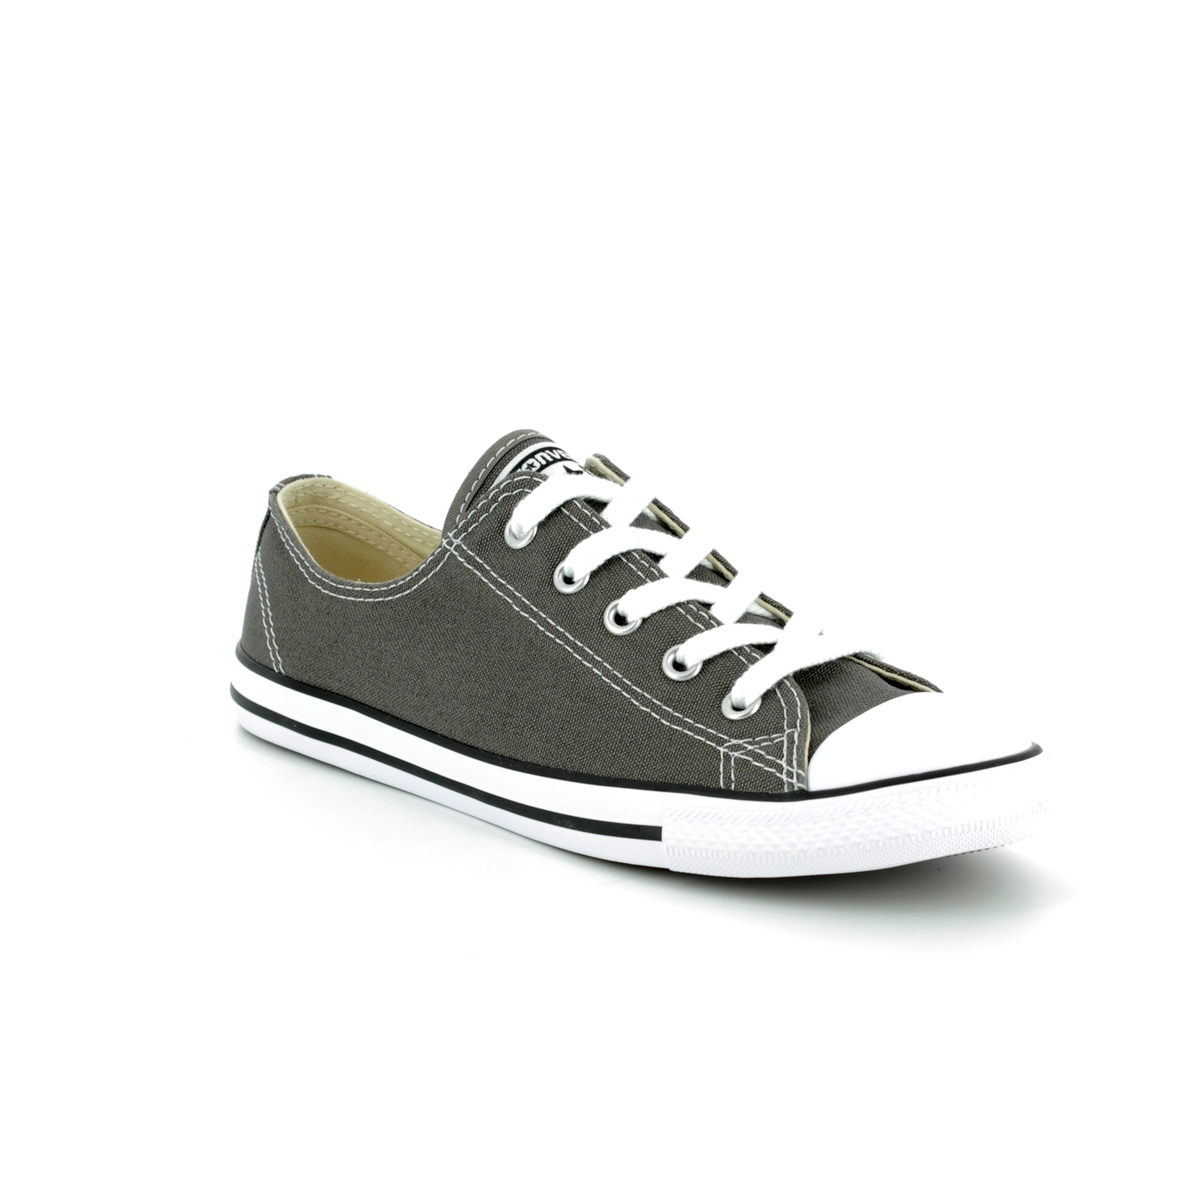 ce2a38537385 Converse Trainers - Charcoal - 532353C All Star DAINTY OX